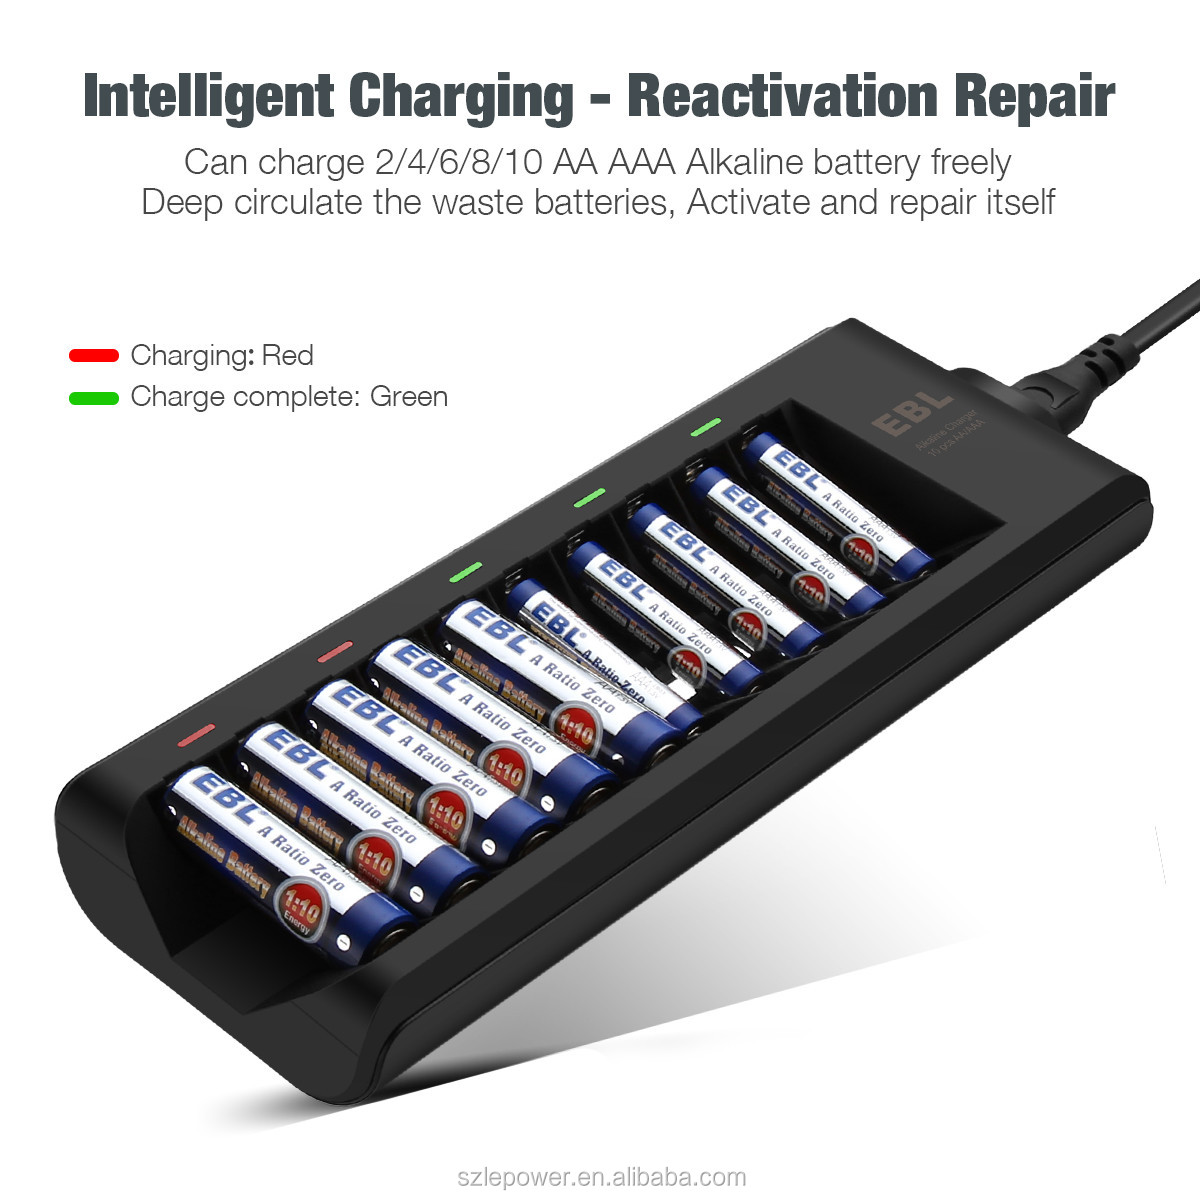 EBL 10 Bay Alkaline Battery Charger for Disposable AA AAA Alkaline Battery